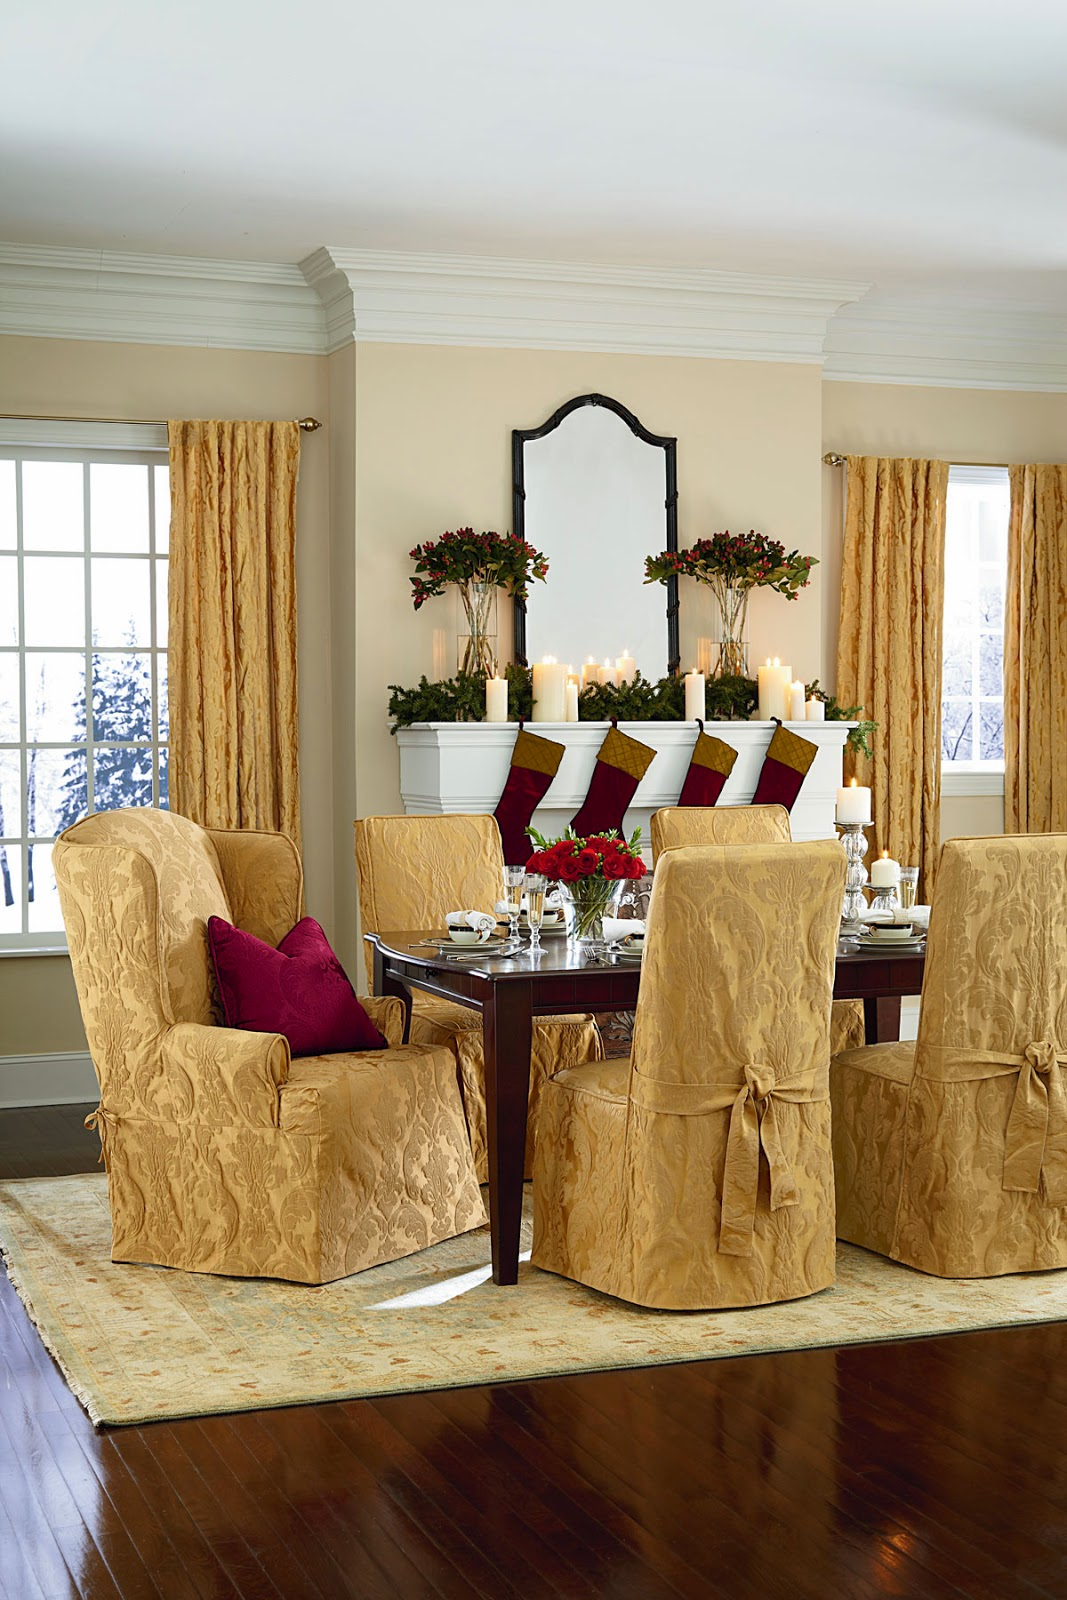 xmas dining room chair covers rent tables and chairs nj sure fit slipcovers 39tis the season to entertain in style